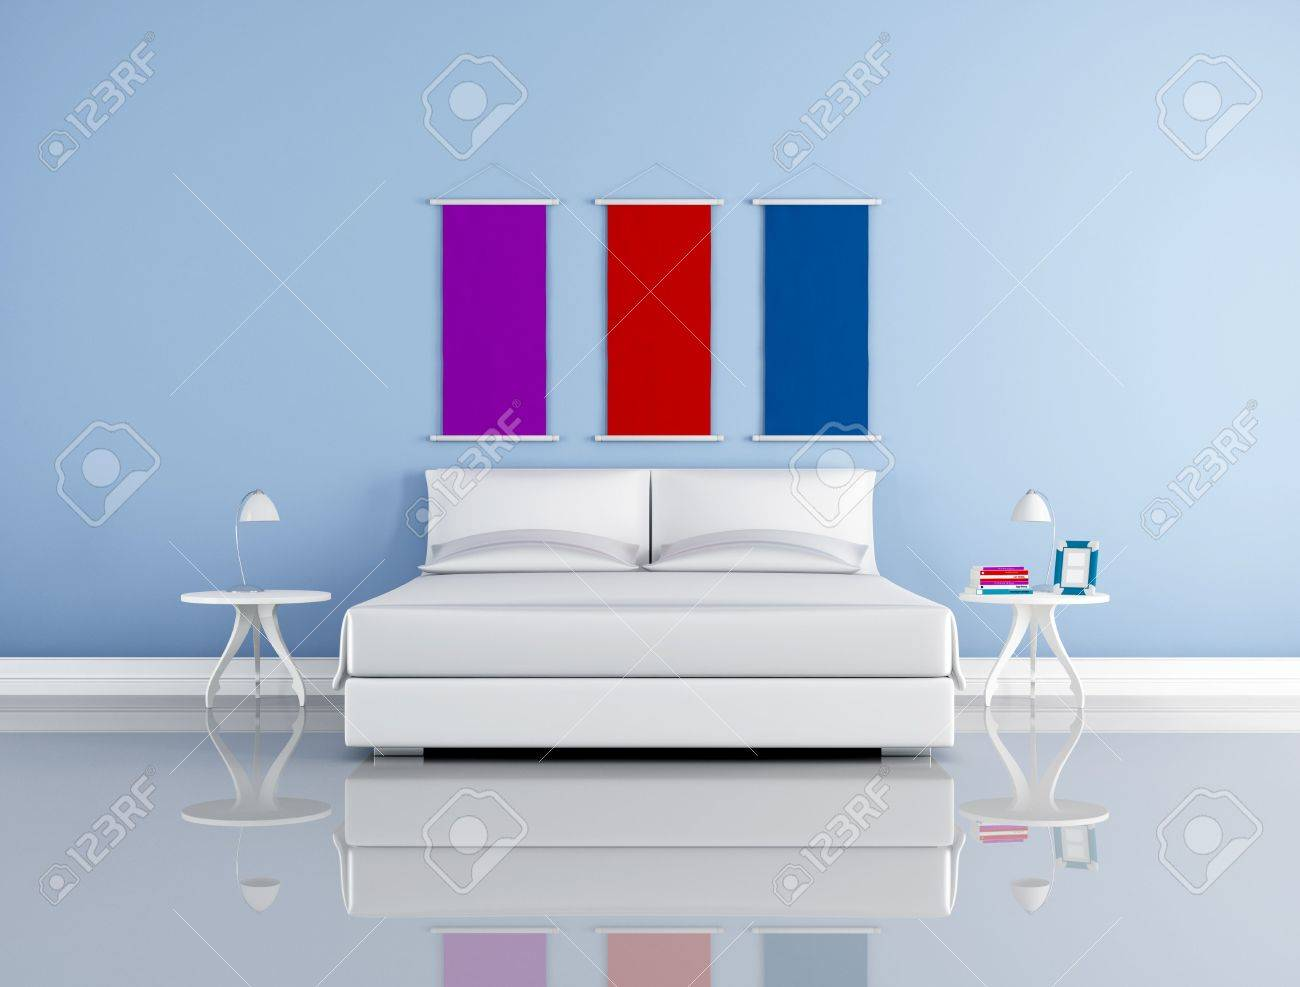 minimalist blue bedroom with simple white double bed bedroom-rendering Stock Photo - 8064779